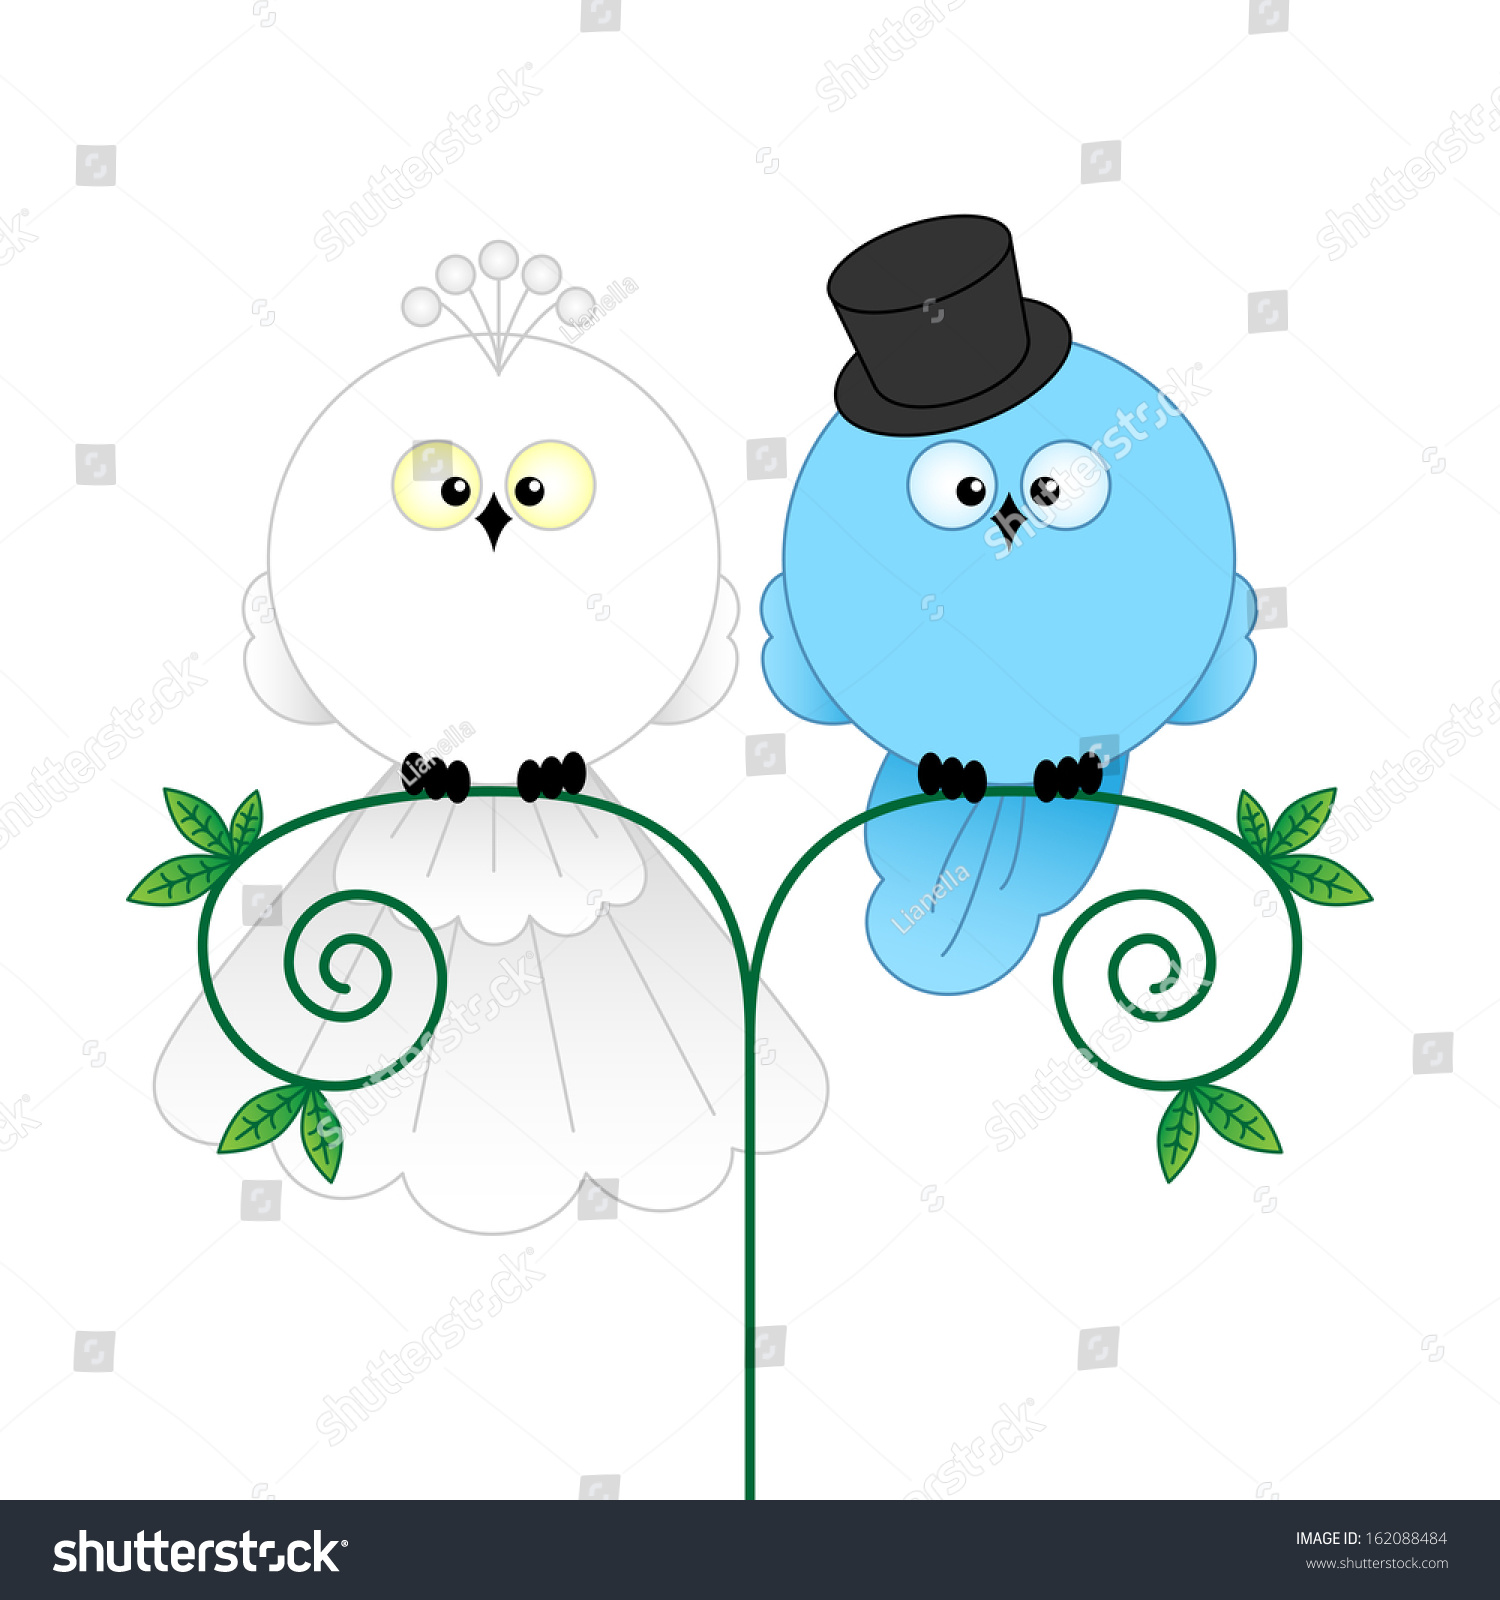 Stylish Bride And Groom Birds Isolated On White Cartoon Characters For Wedding Invitations Cards